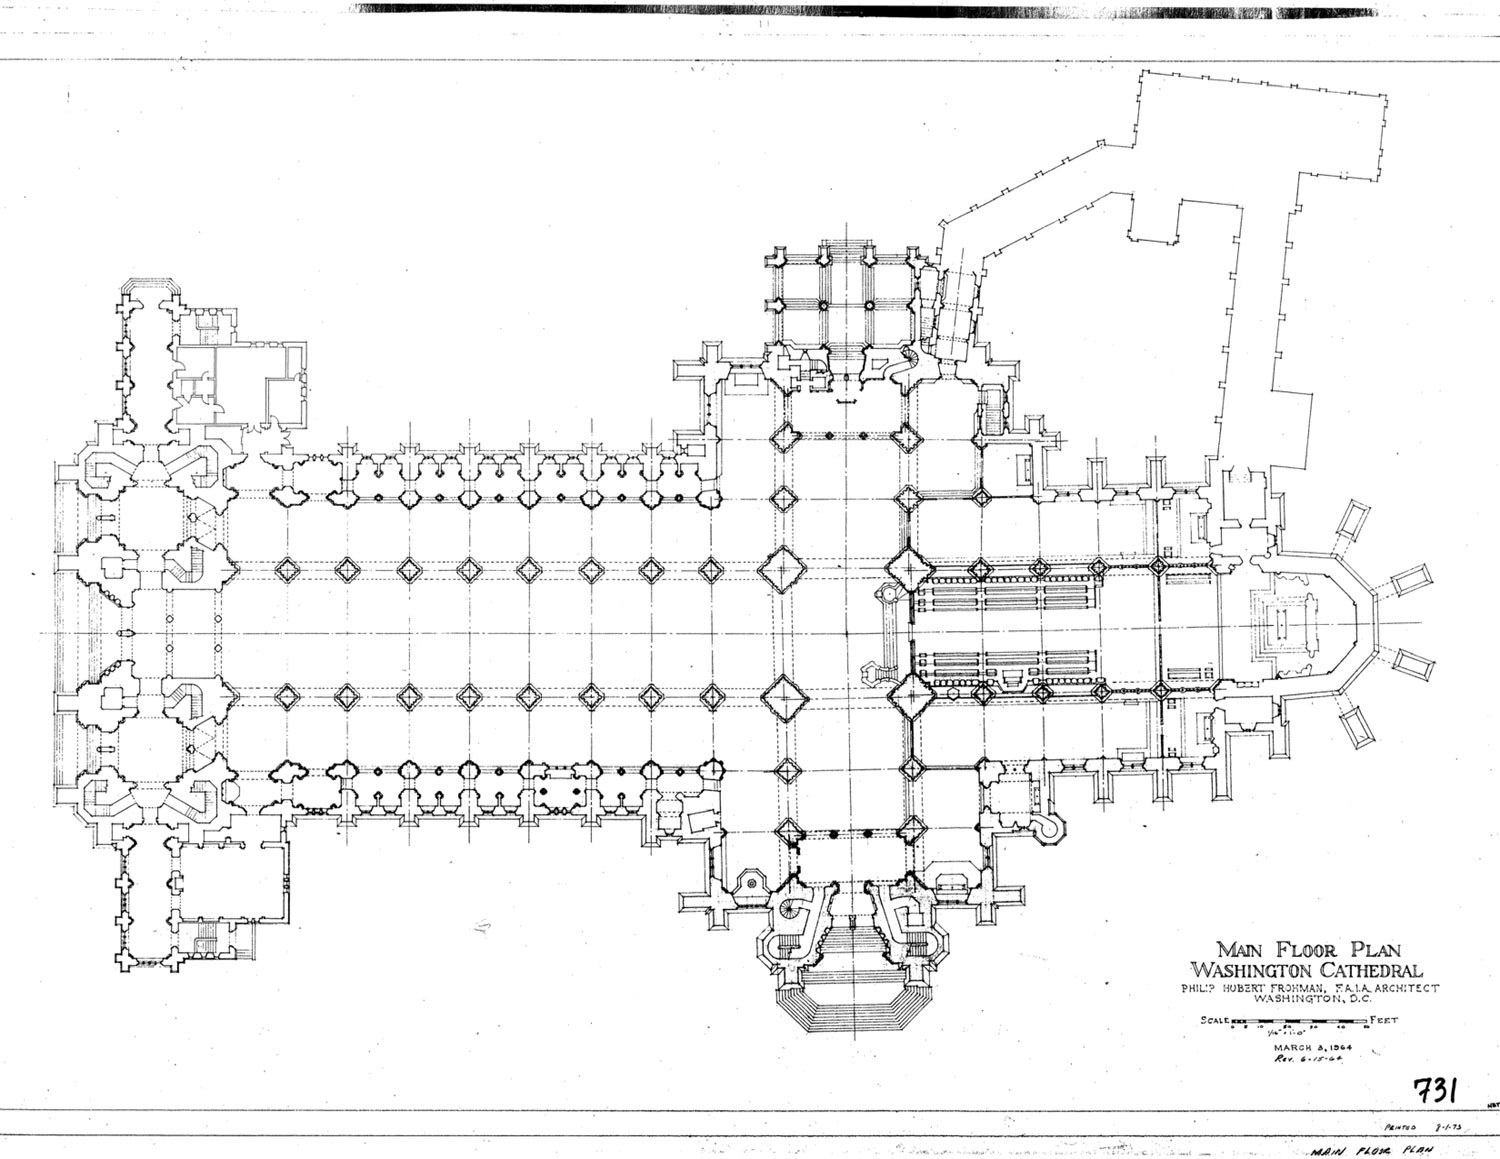 The Villages Floor Plans Washington National Cathedral Collection At The National